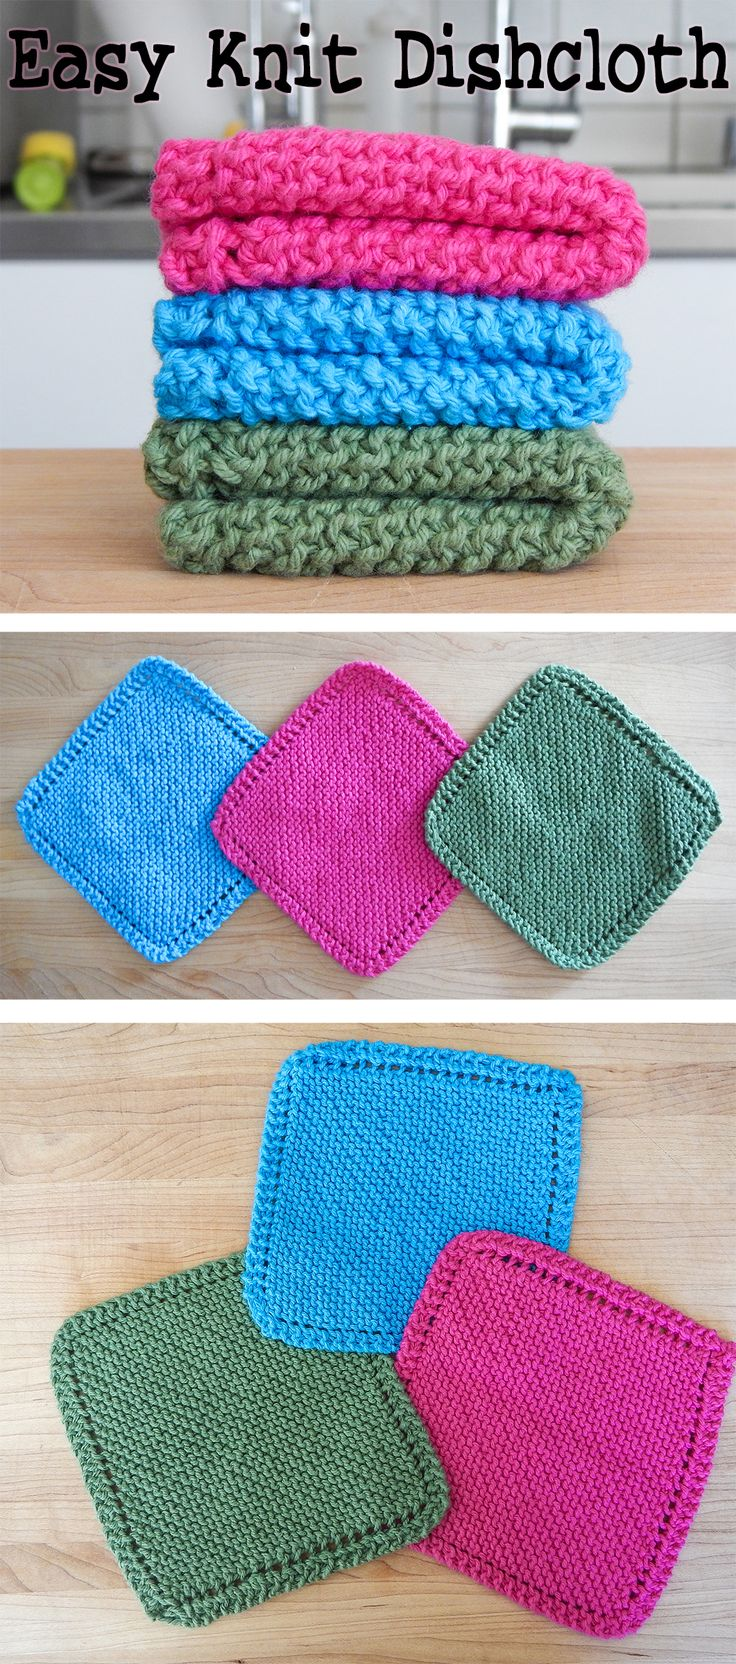 Easy Knitting Crafts For Beginners : The best knit dishcloth patterns ideas on pinterest